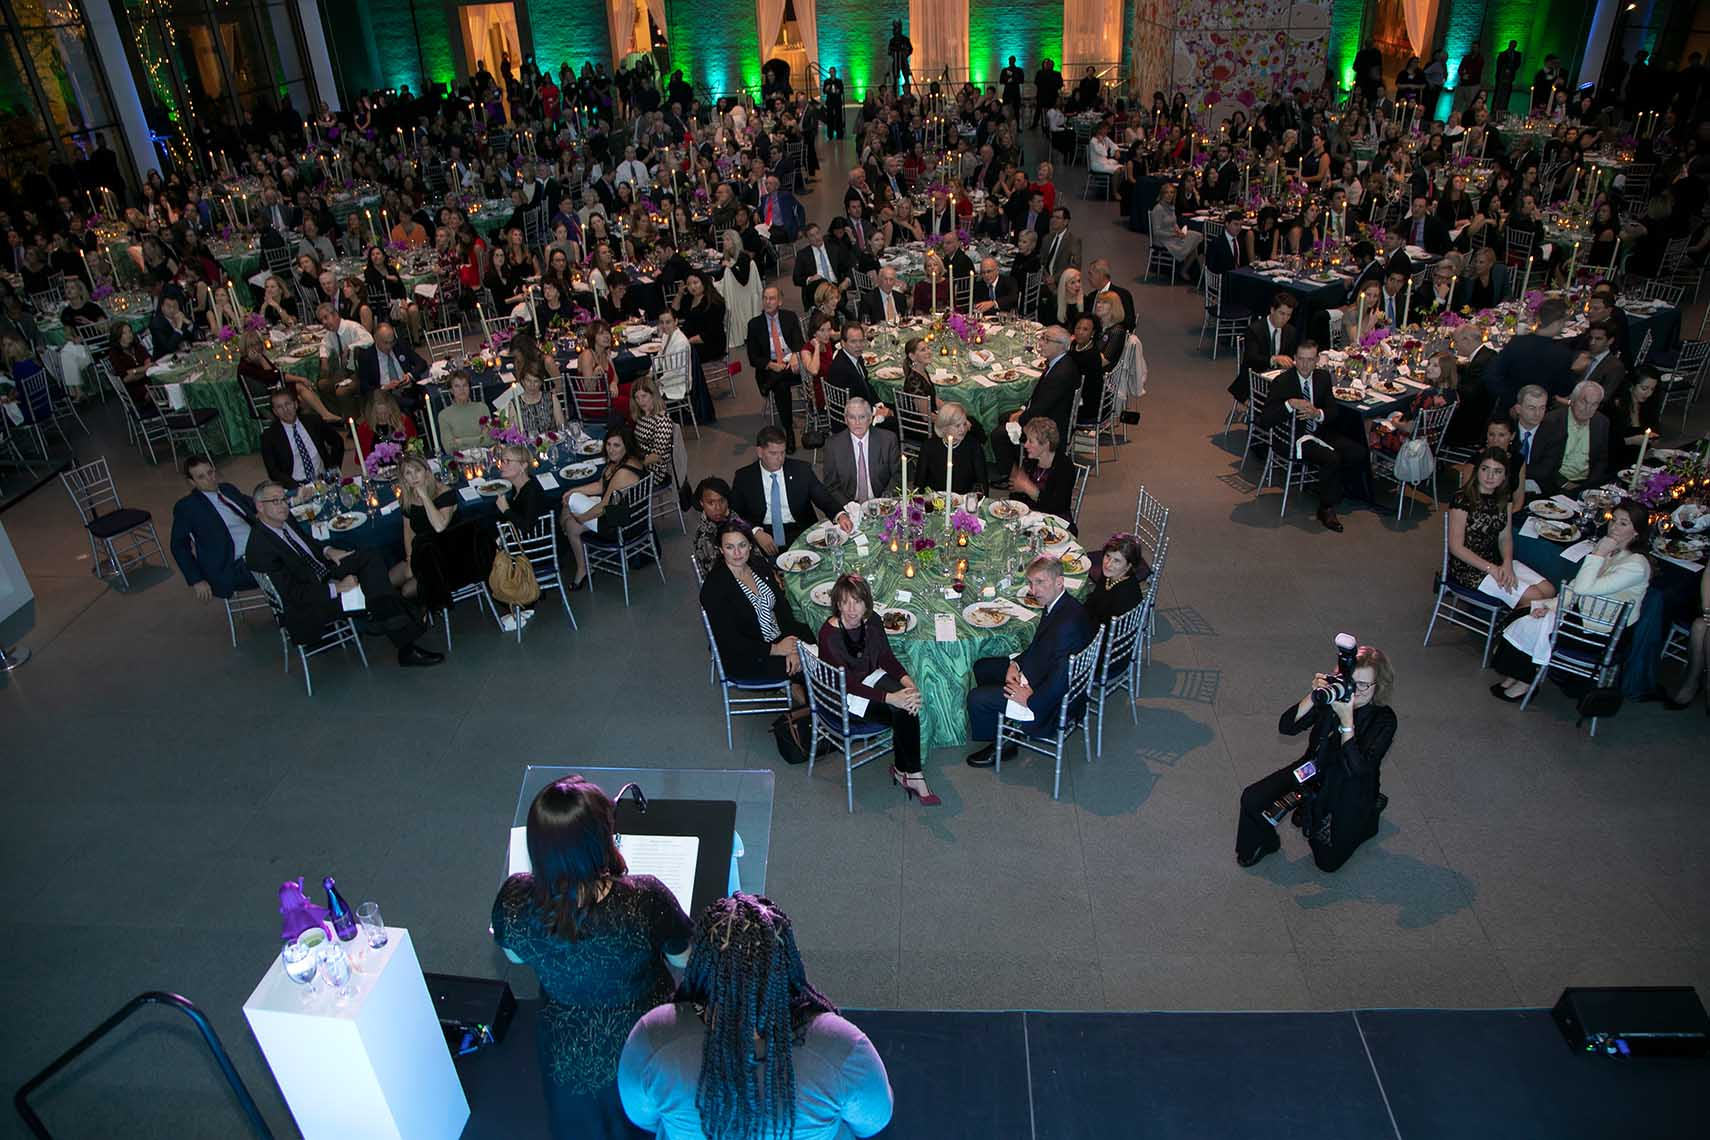 View of the Big in Boston gala from behind the stage